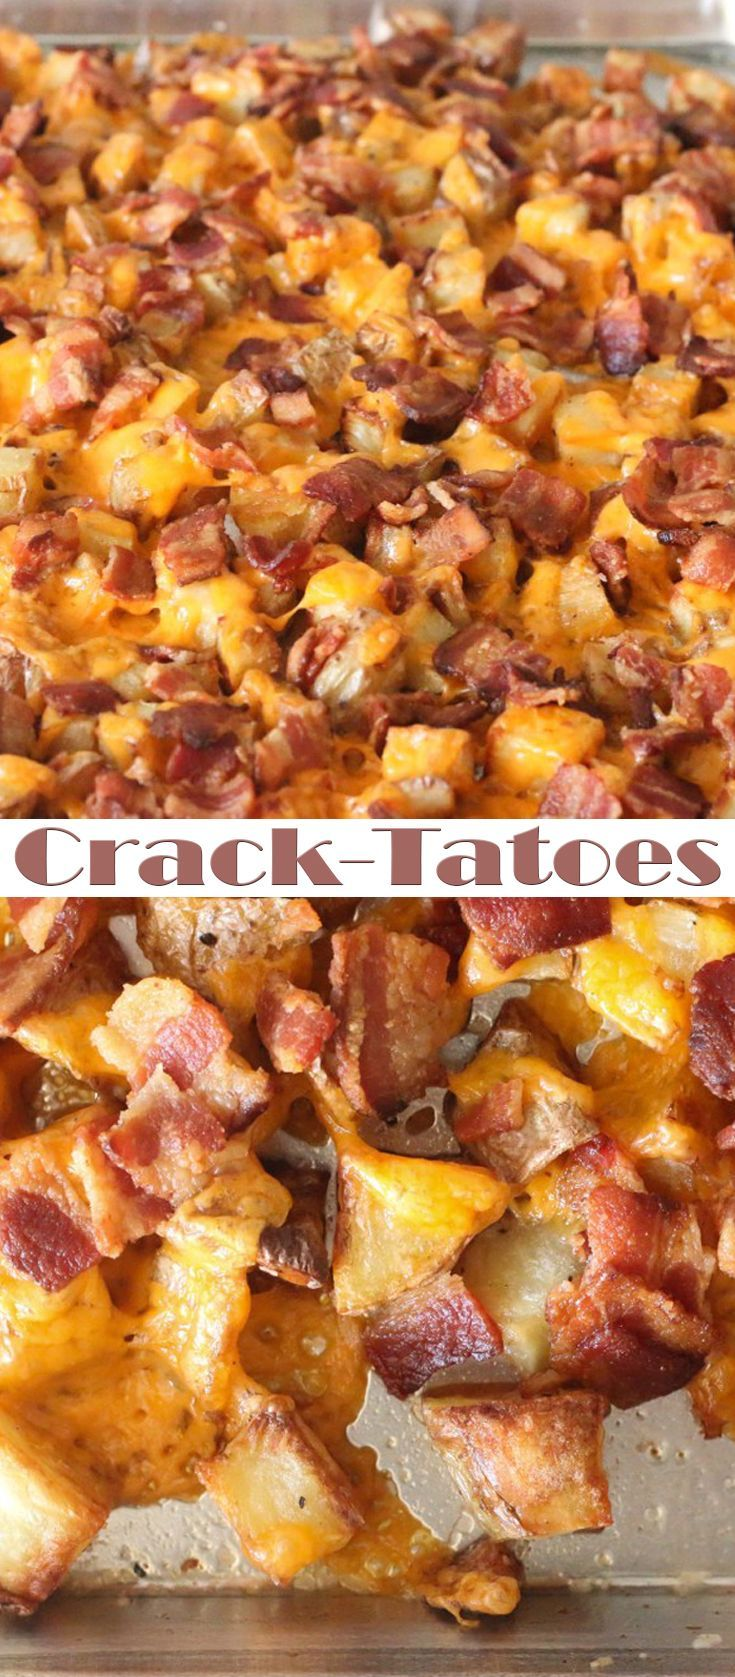 Crack-Tatoes  Check out our sous vide recipes at http://sousvidewizard.com!